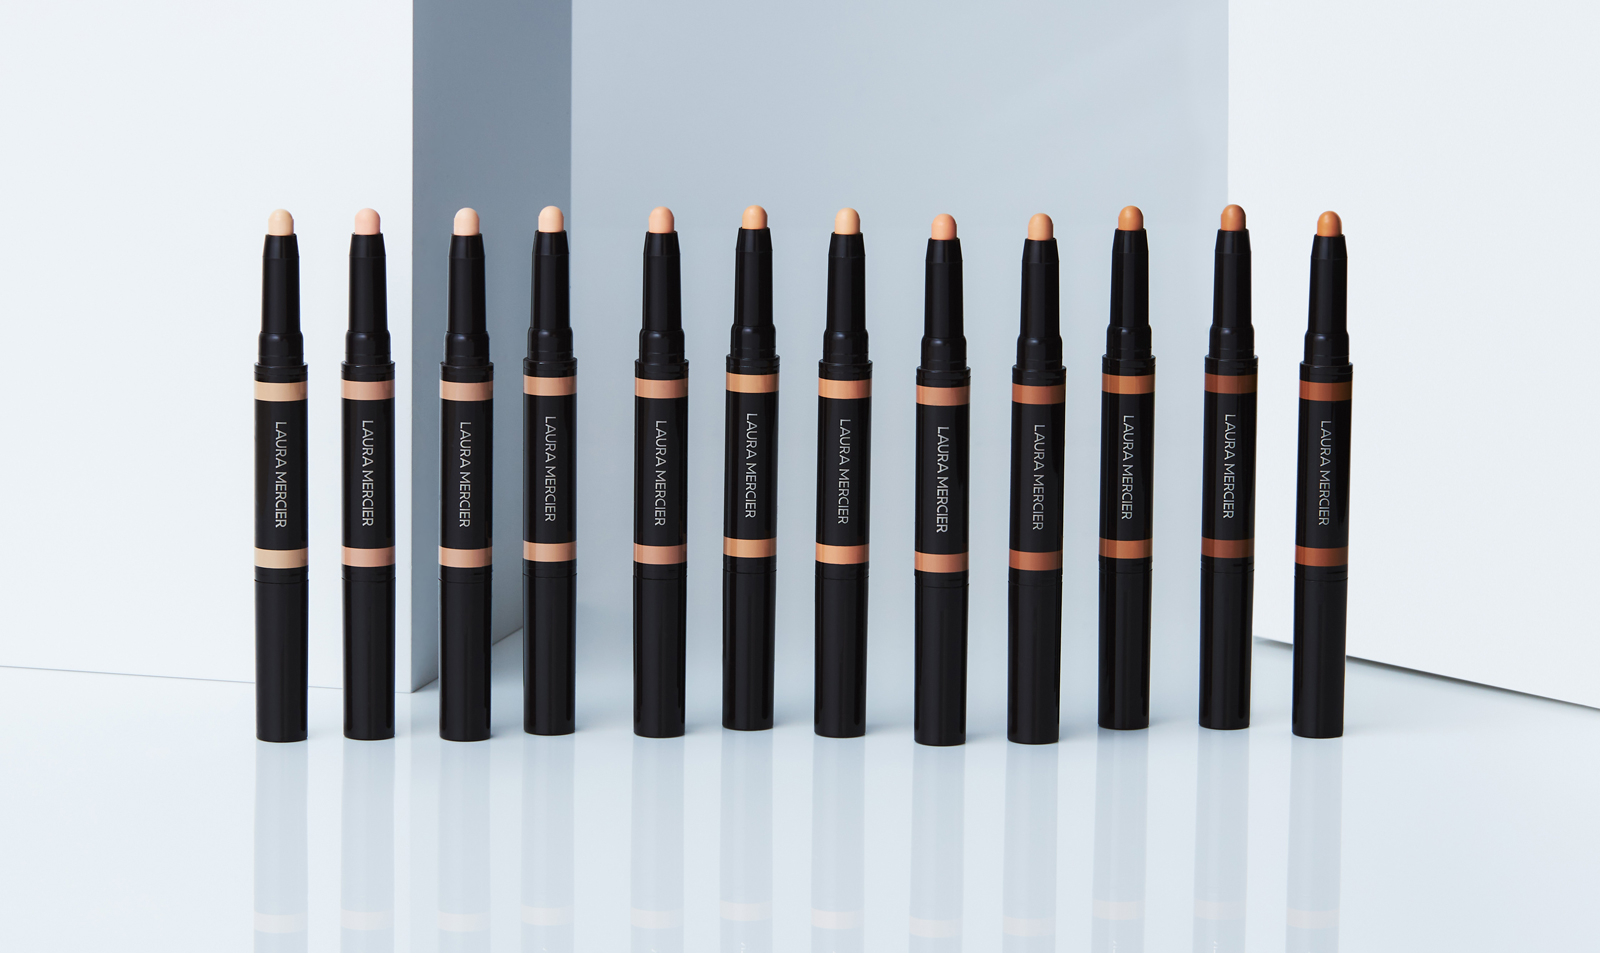 LAURA MERCIER New Concealer